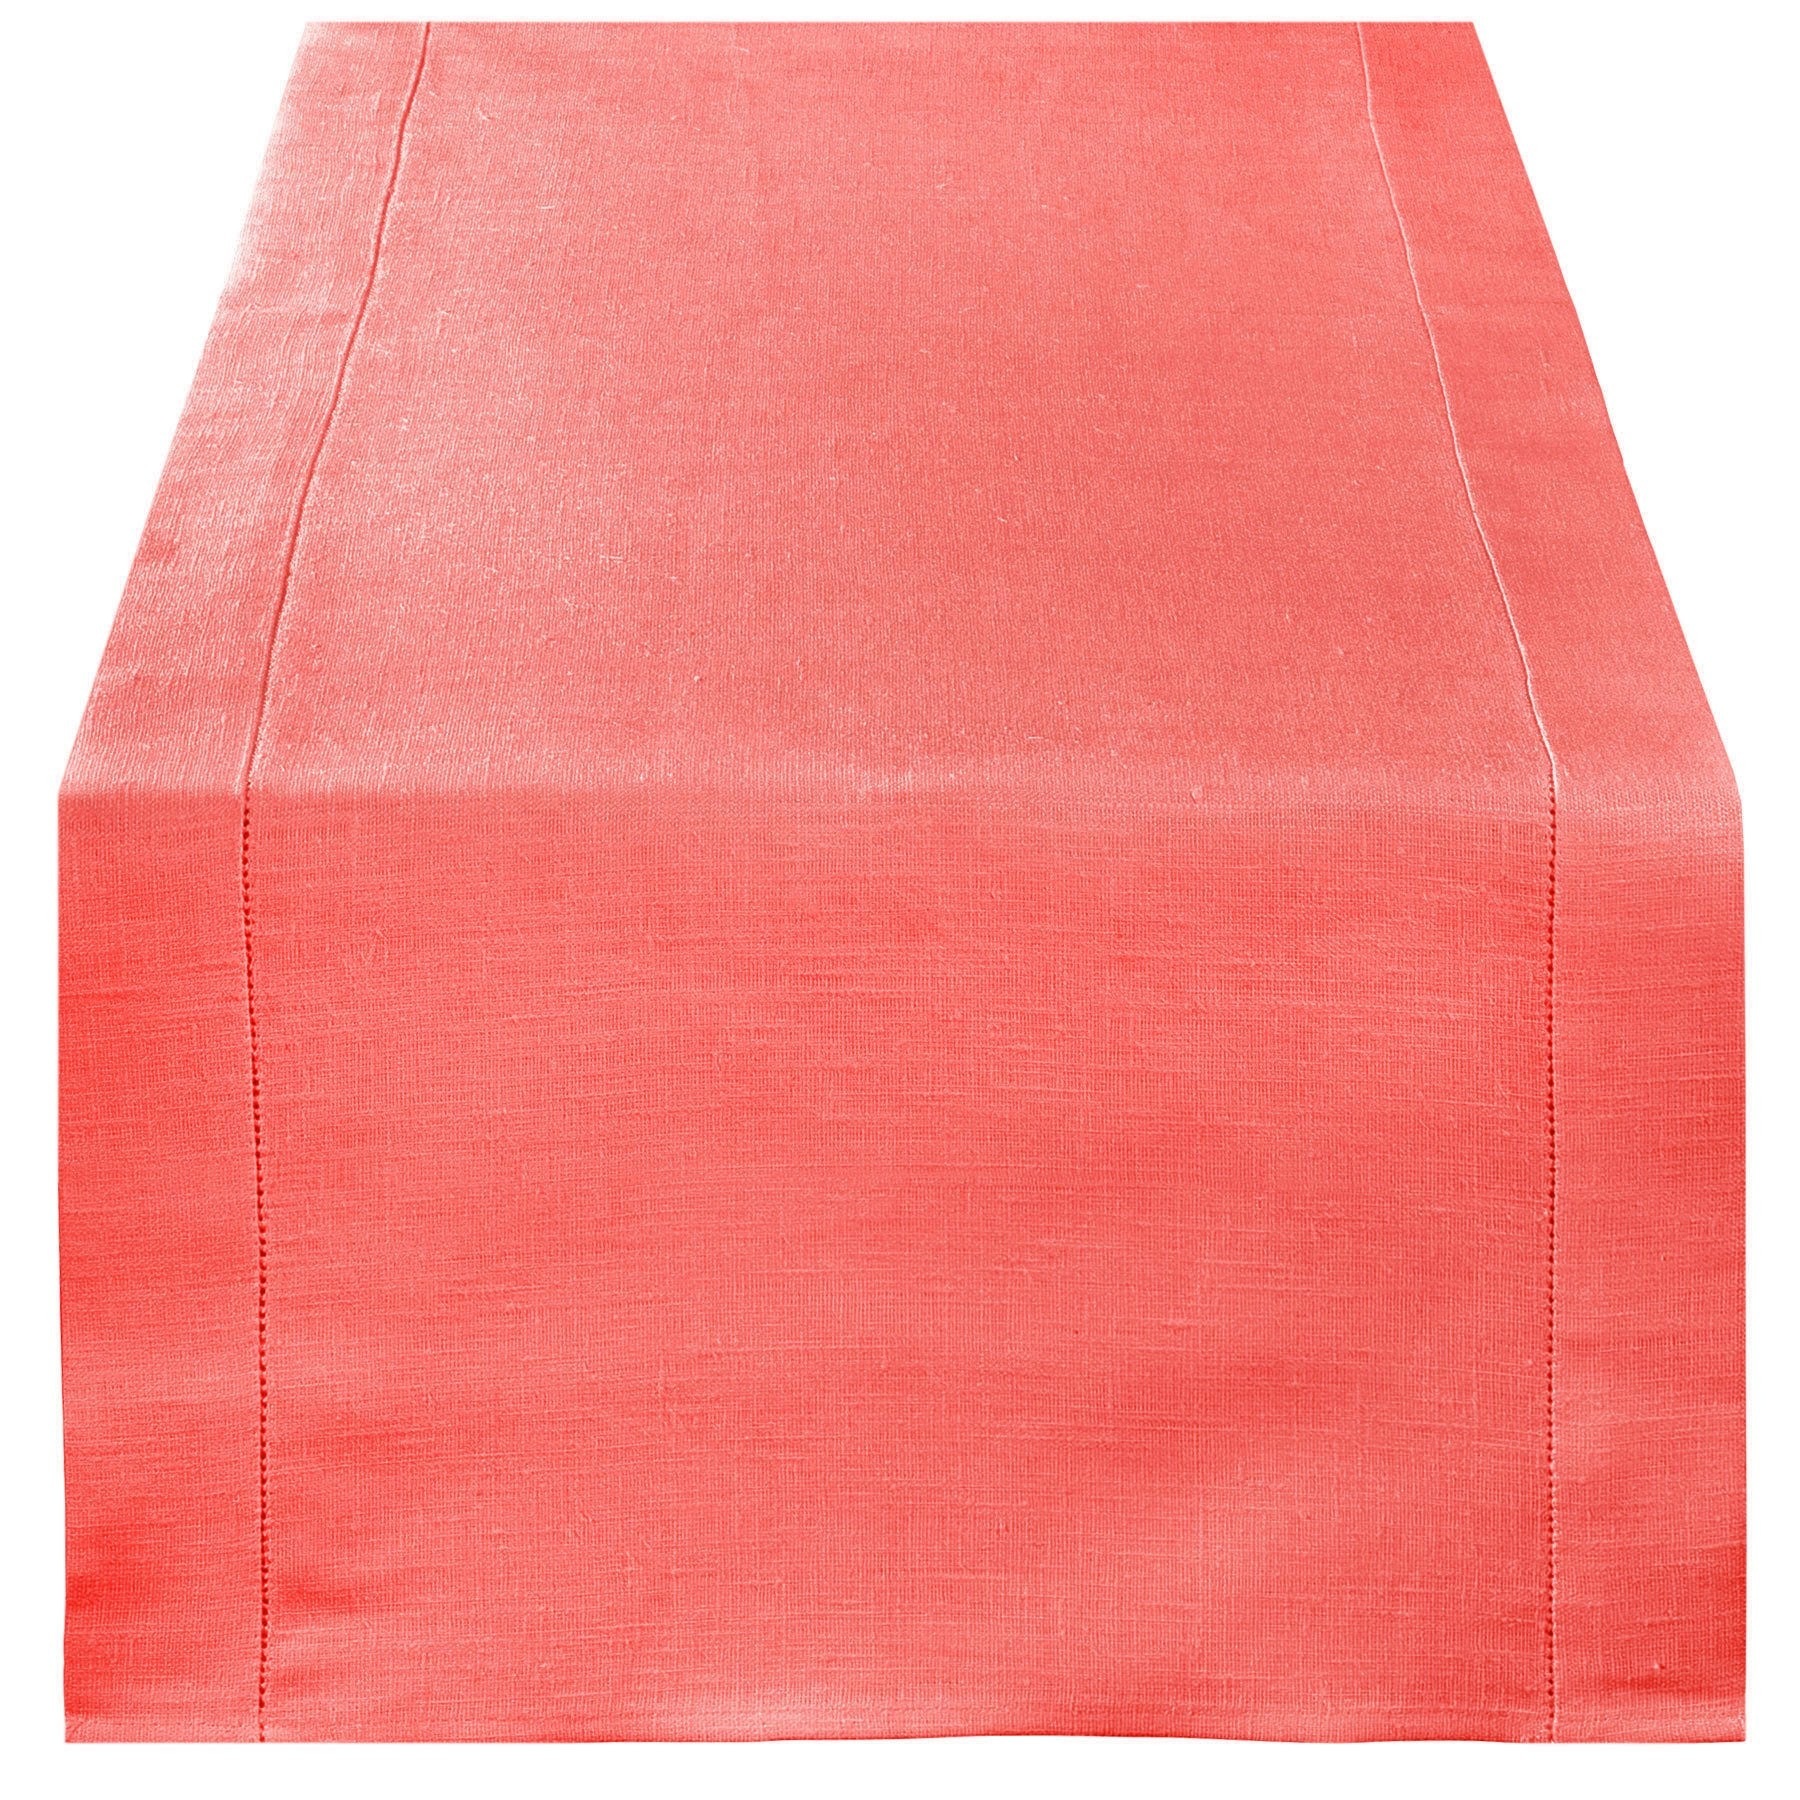 TABLE RUNNER <br />coral